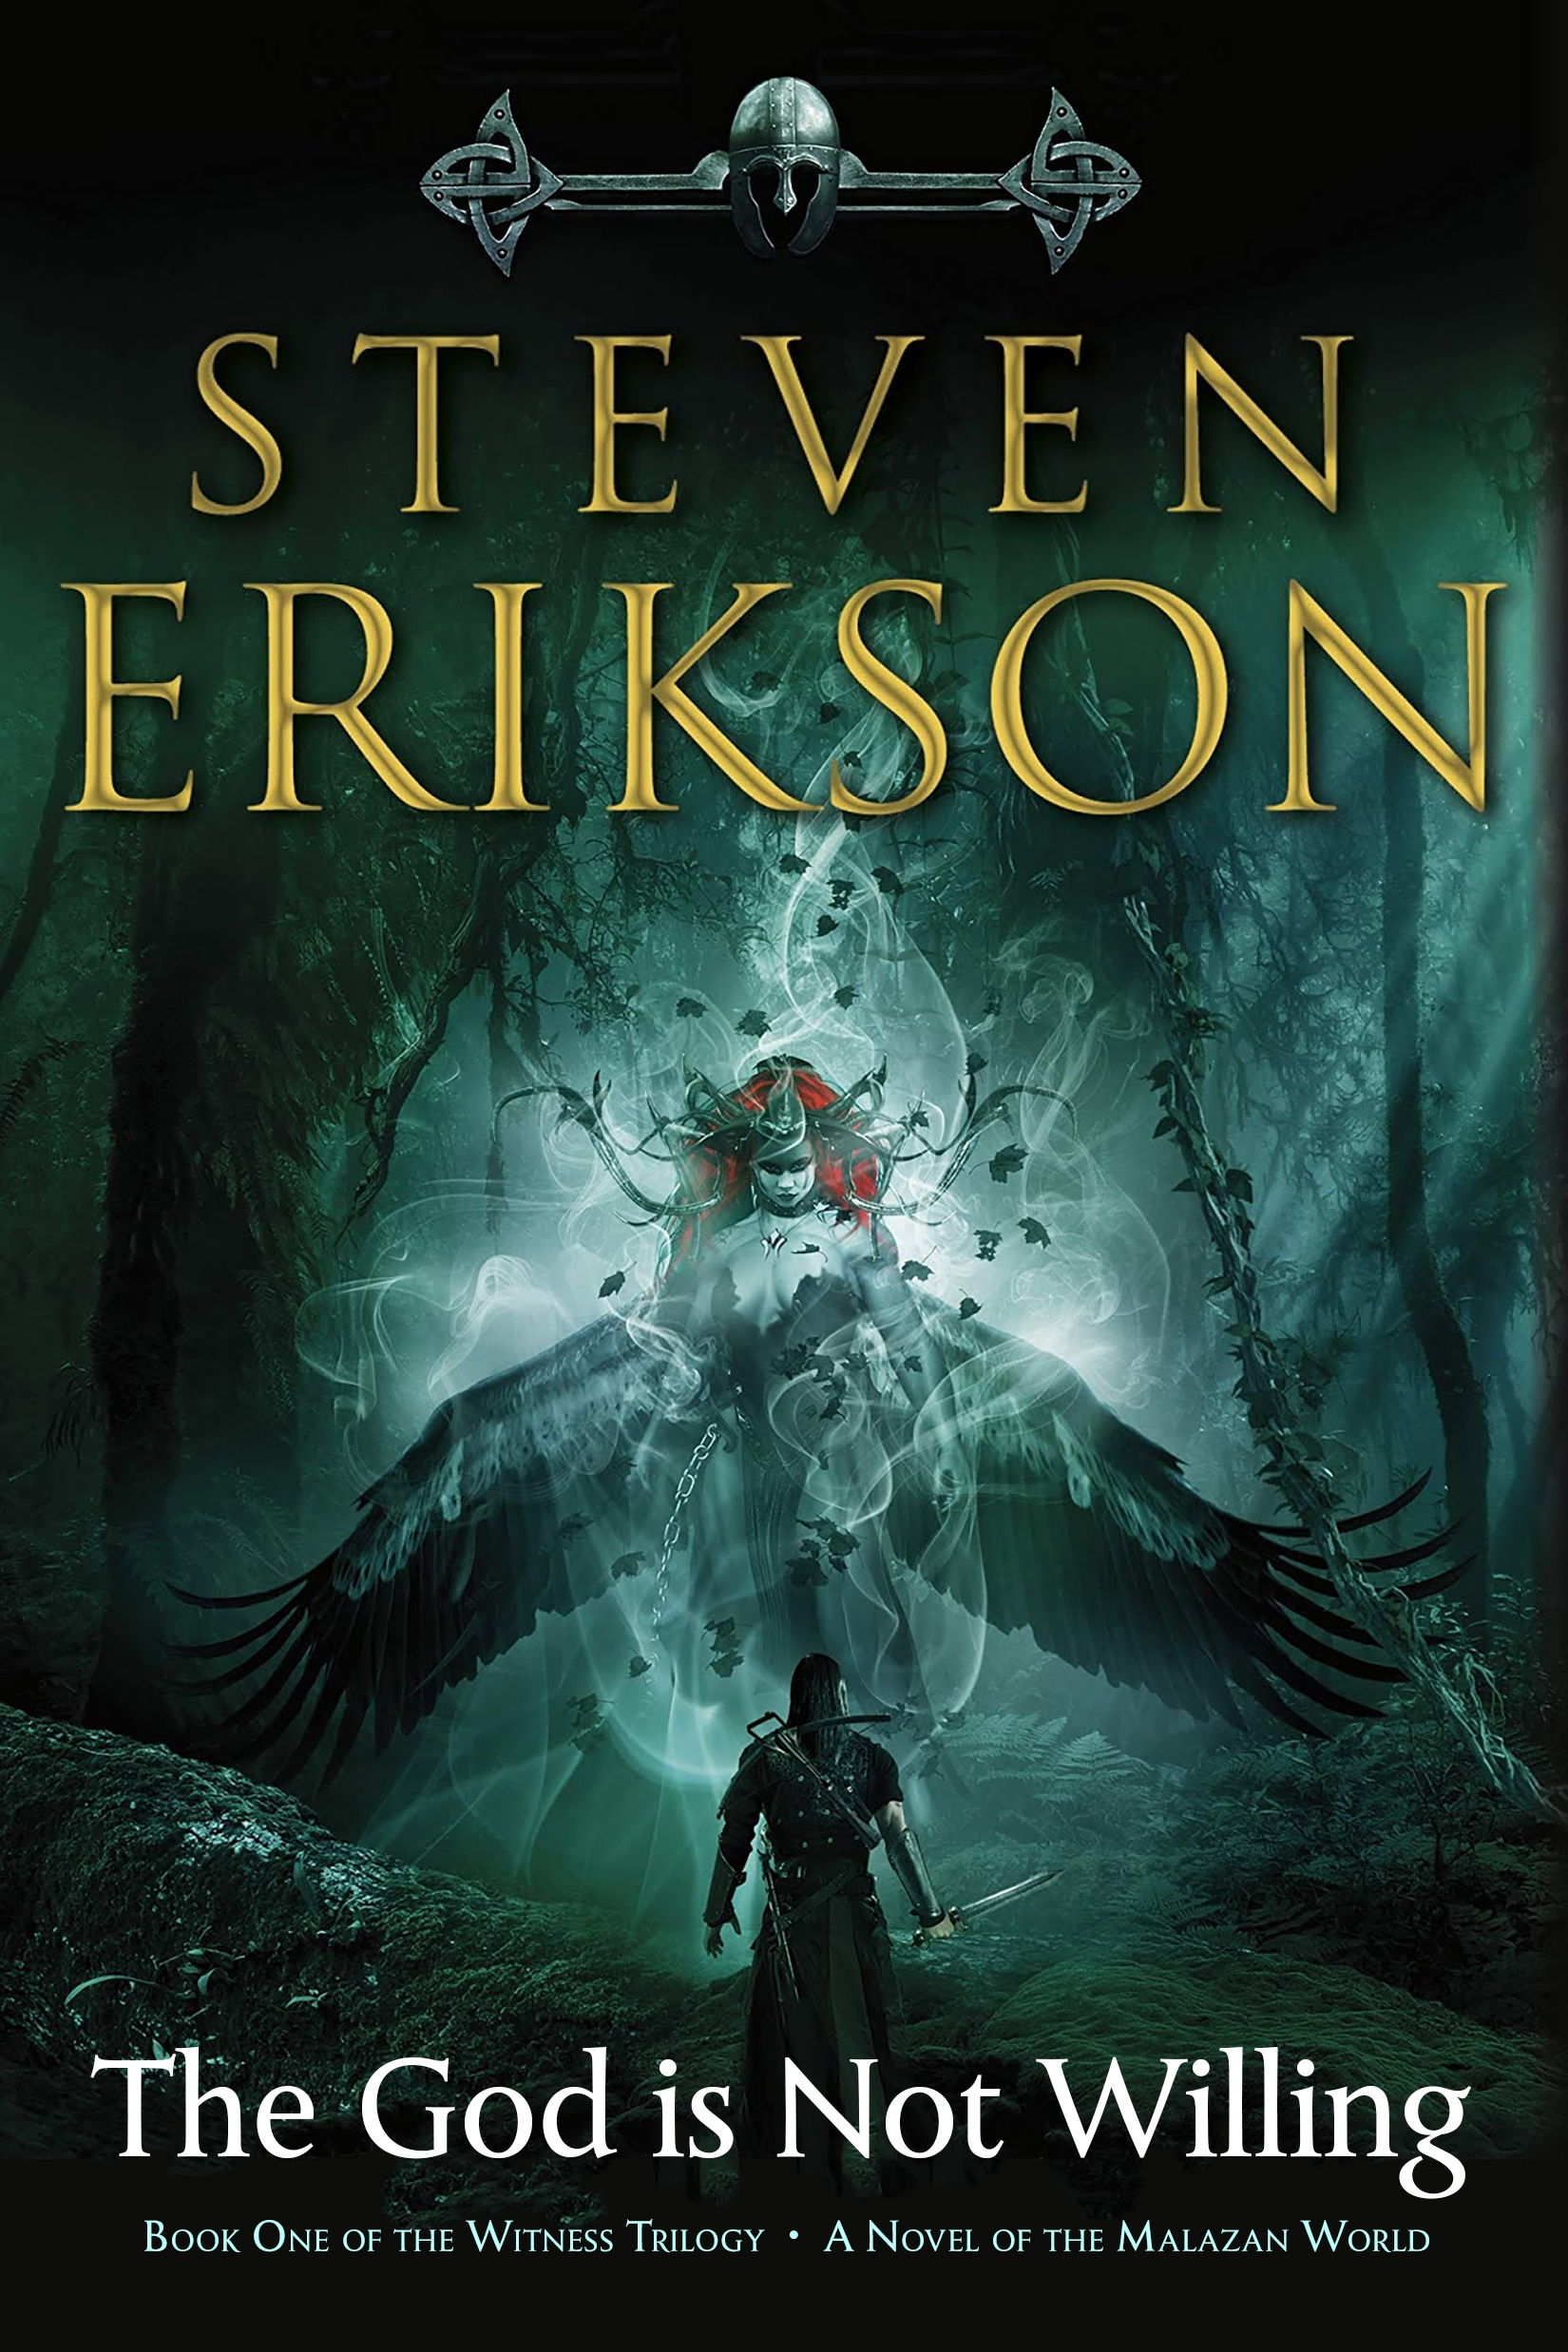 The God is Not Willing by Steven Erikson